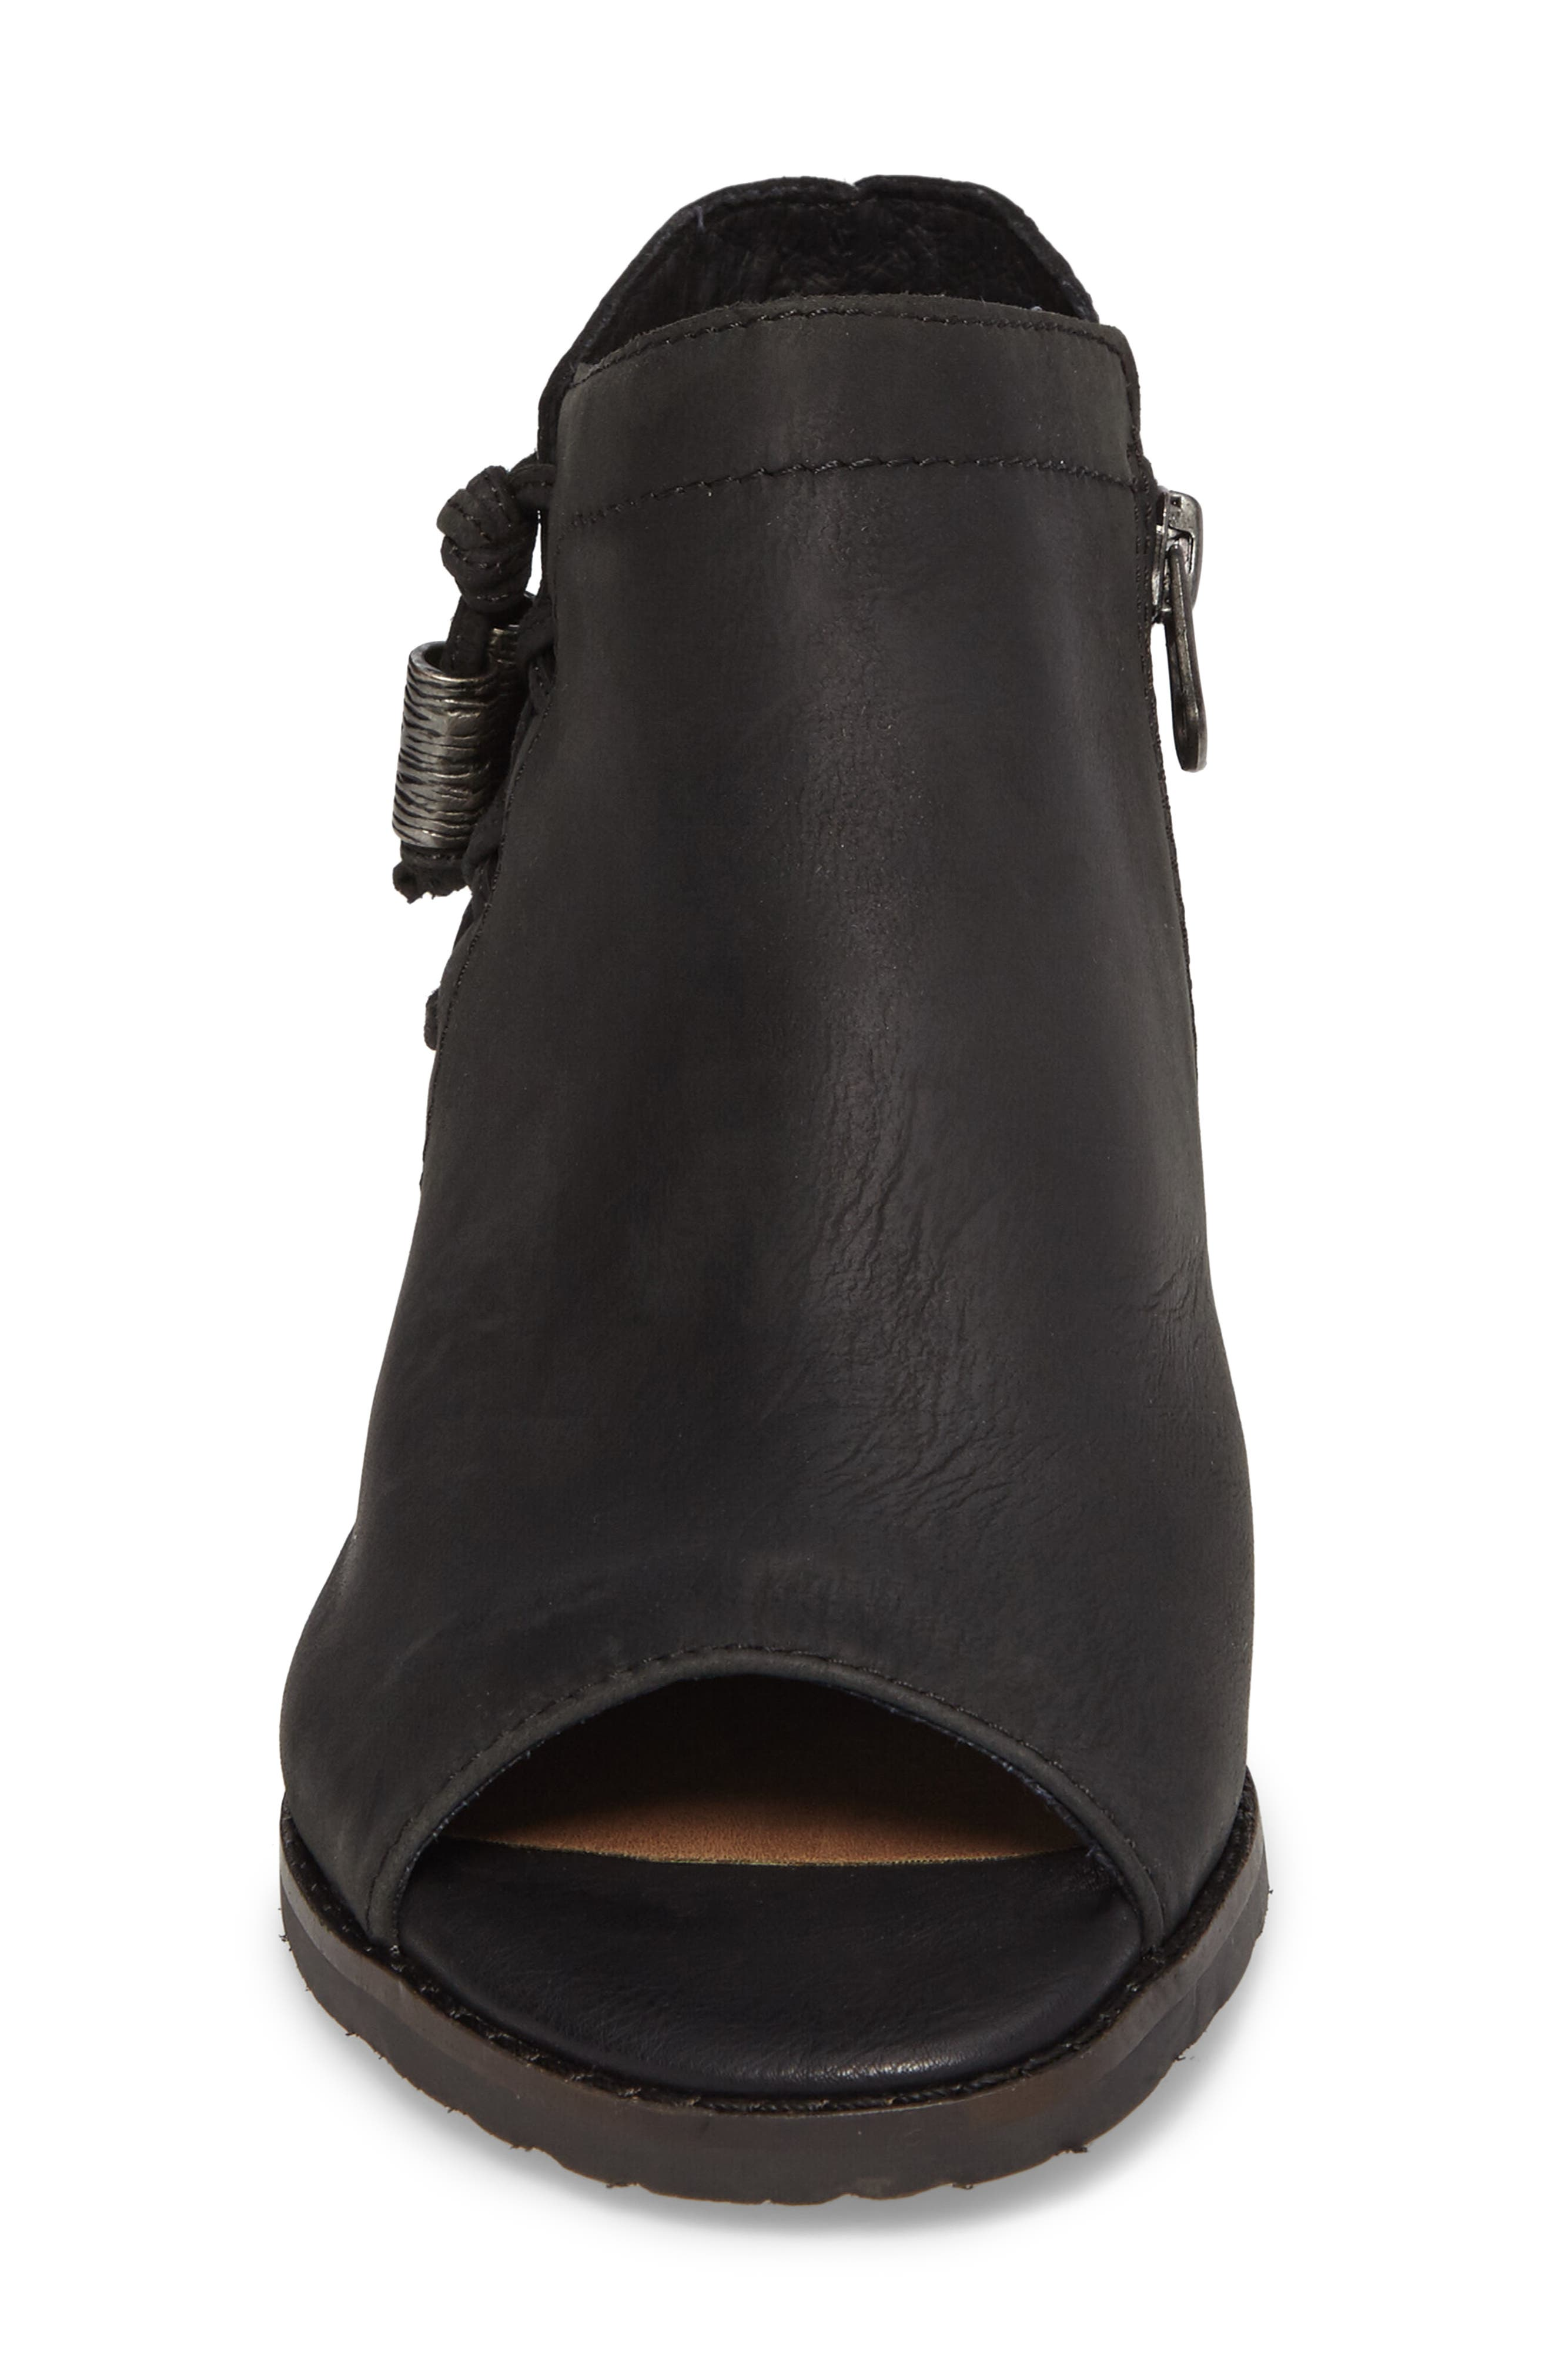 Truckage Open Toe Bootie,                             Alternate thumbnail 4, color,                             Black Leather